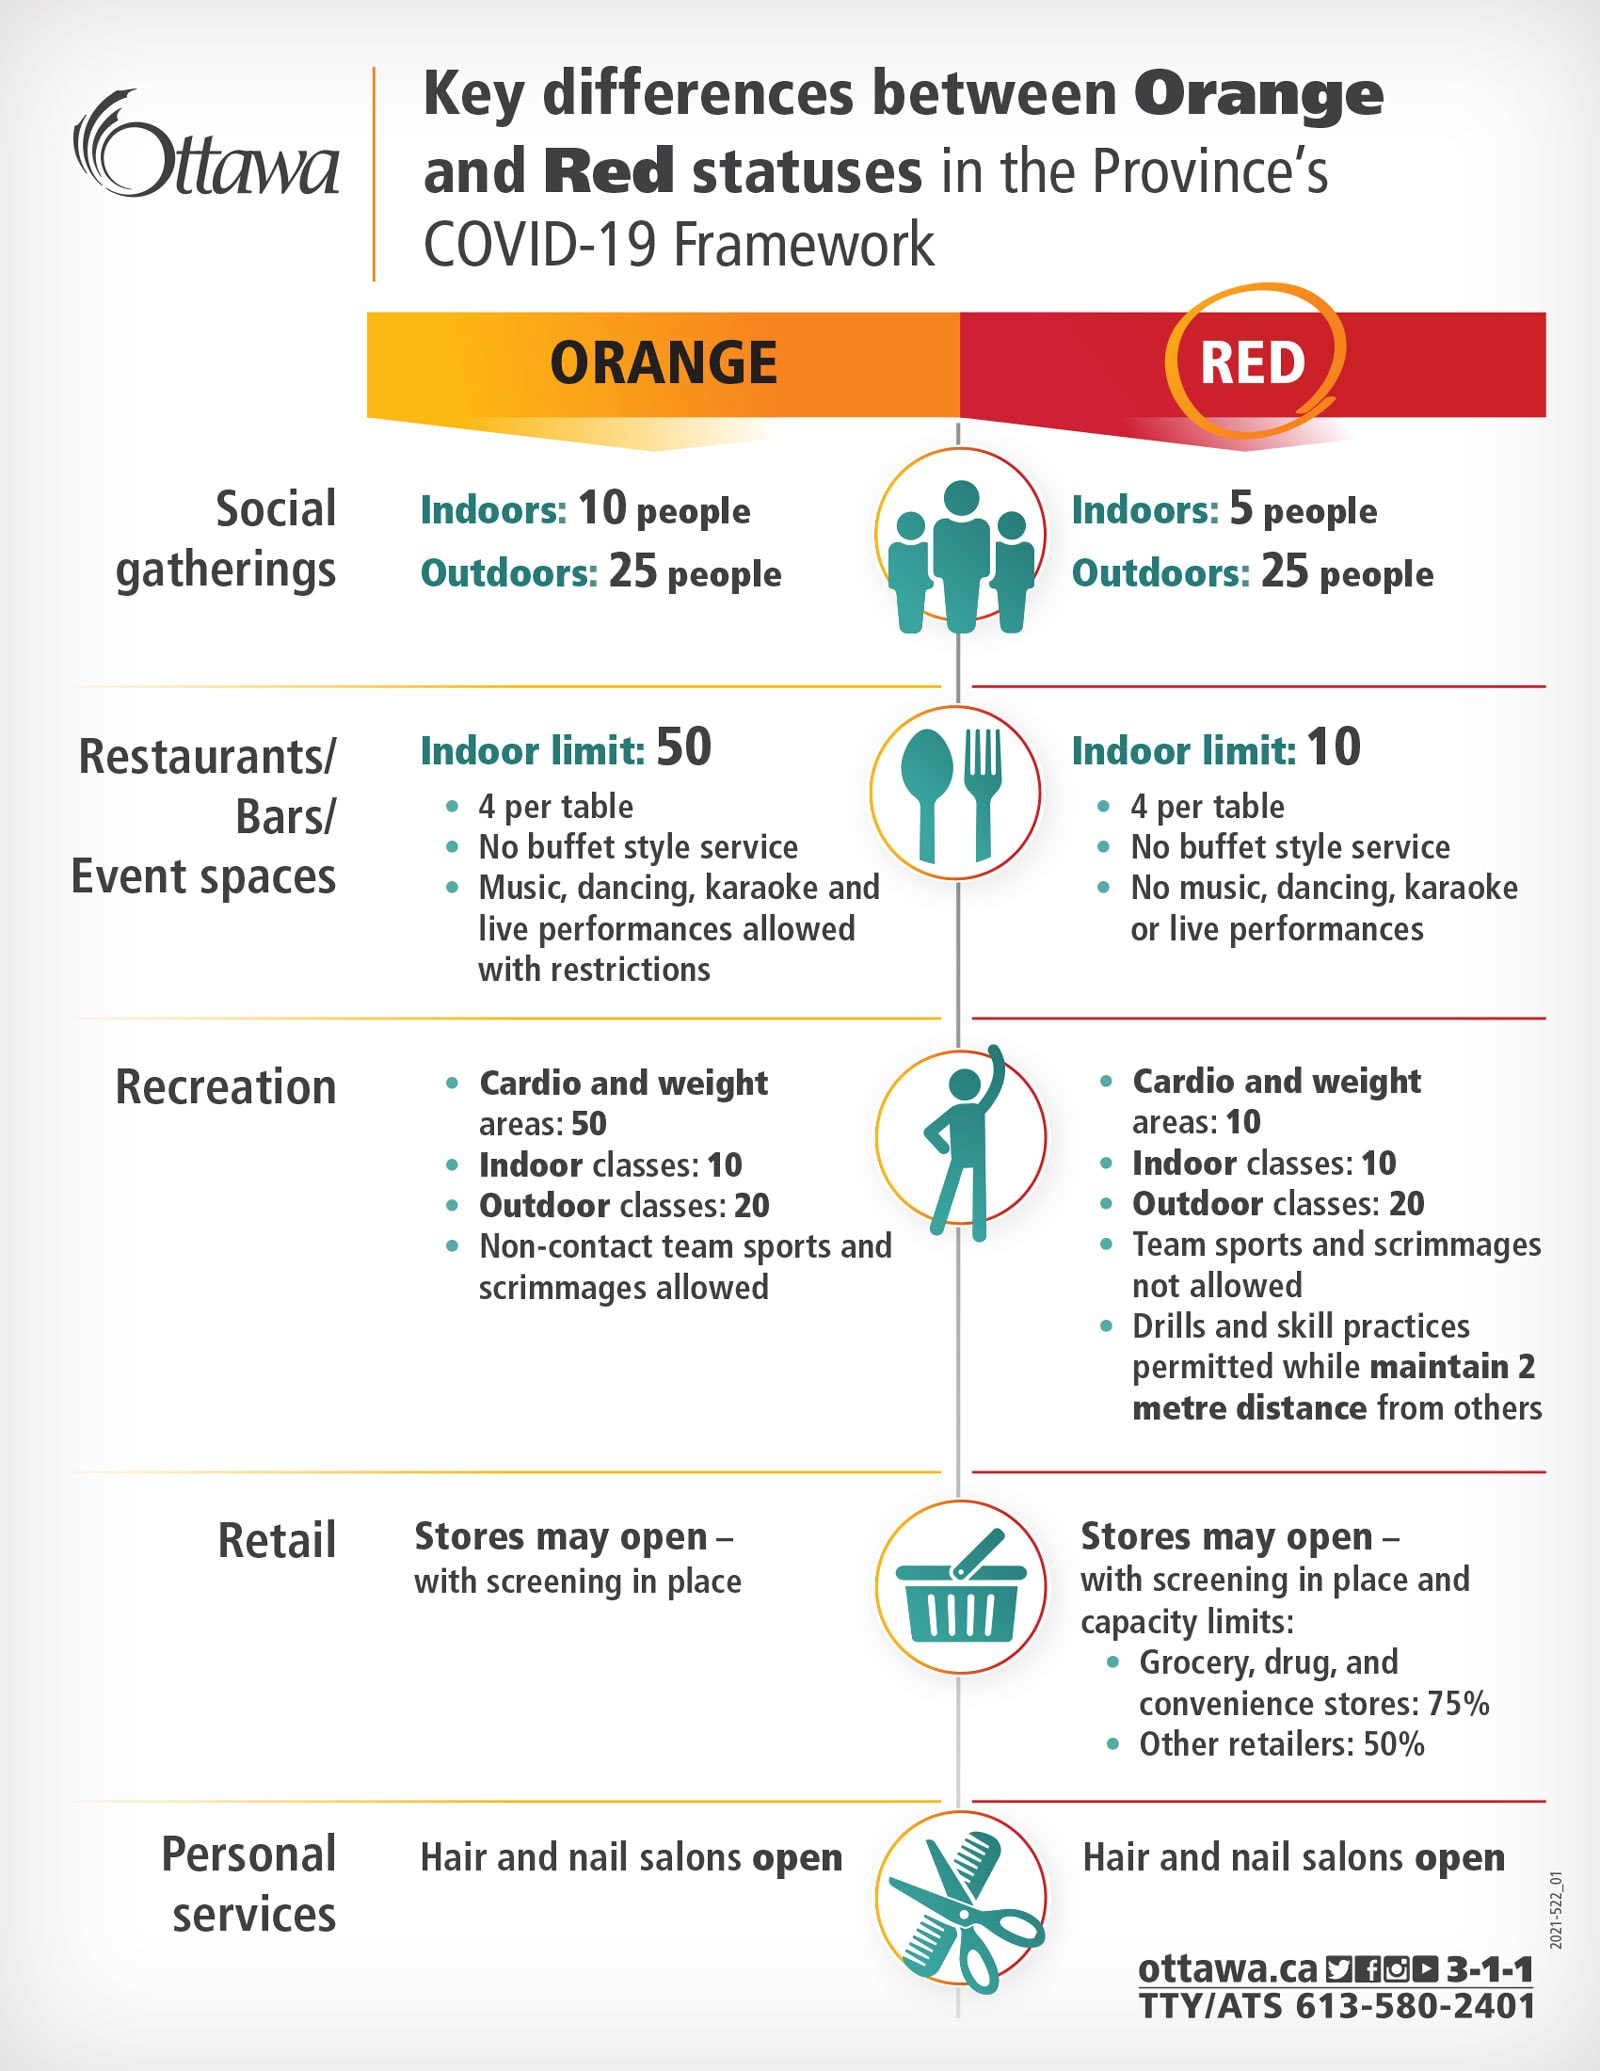 Key differences between Orange and Red statuses in the Province's COVID-19 Framework